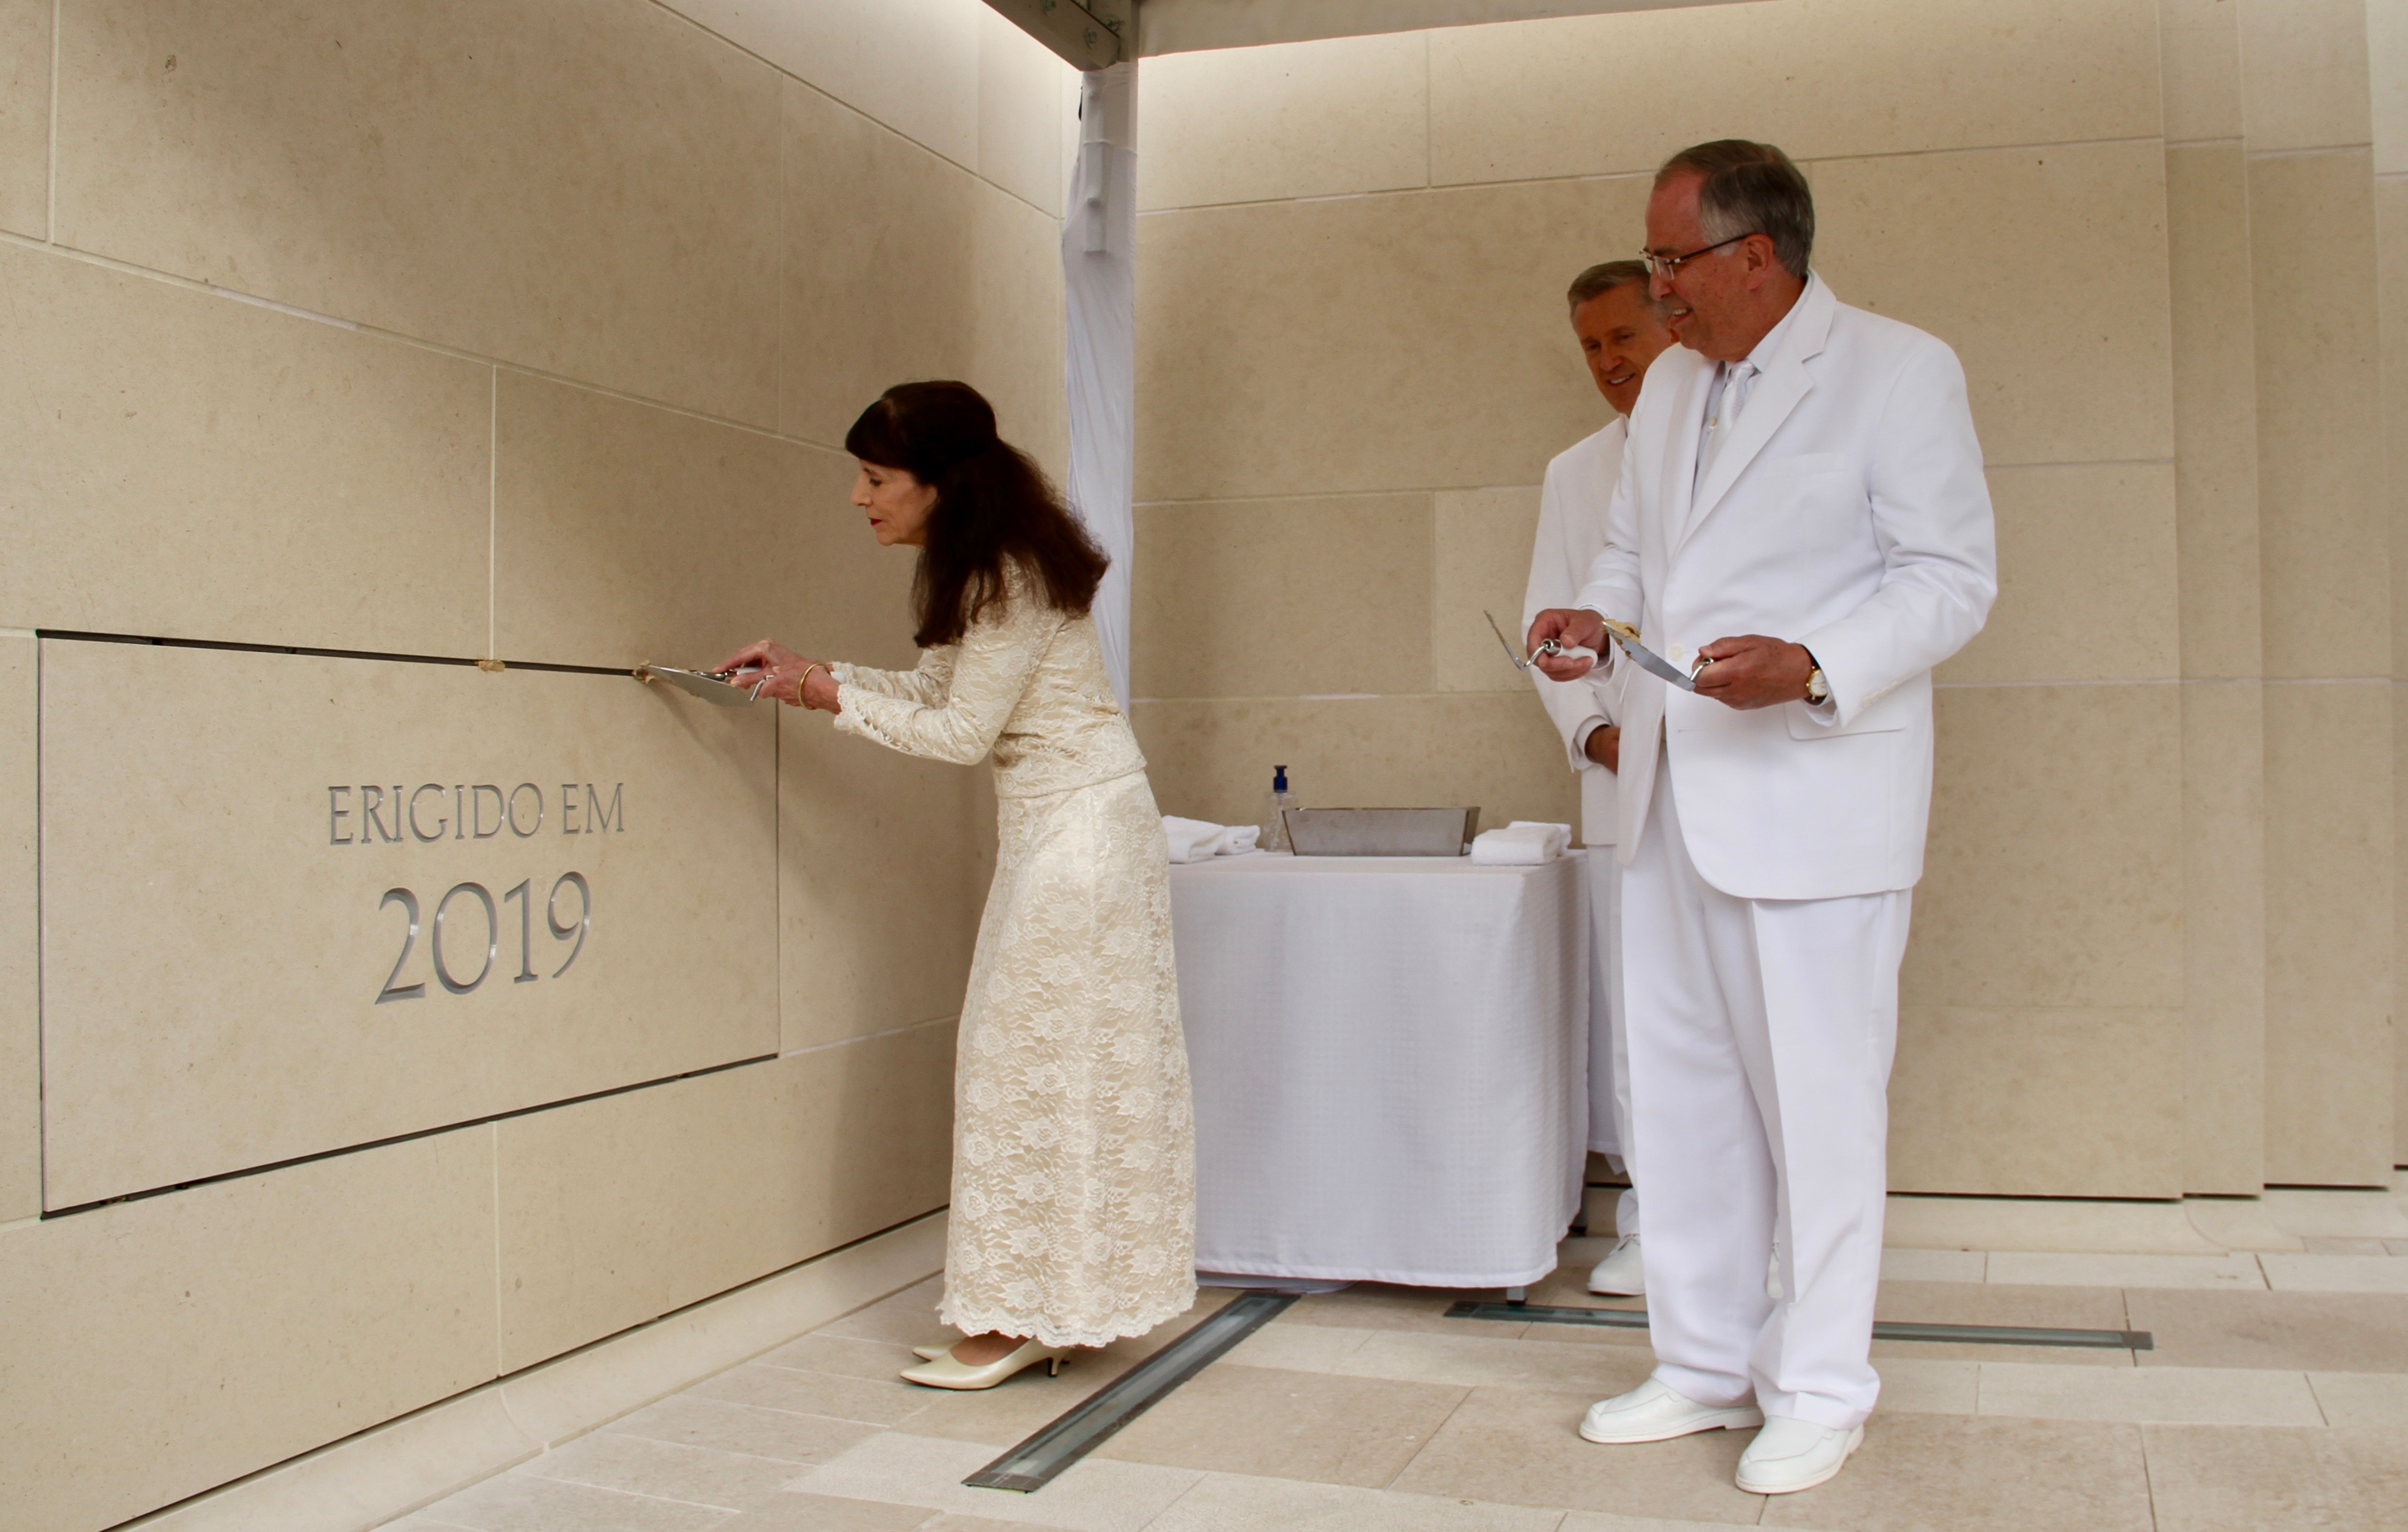 Sister Kathy Andersen applies mortar around the cornerstone of the Lisbon Portugal Temple dedication on Sunday, Sept. 15, 2019, being watched by her husband, Elder Neil L. Andersen of the Quorum of the Twelve Apostles, right, and Elder Kevin R. Duncan, behind.